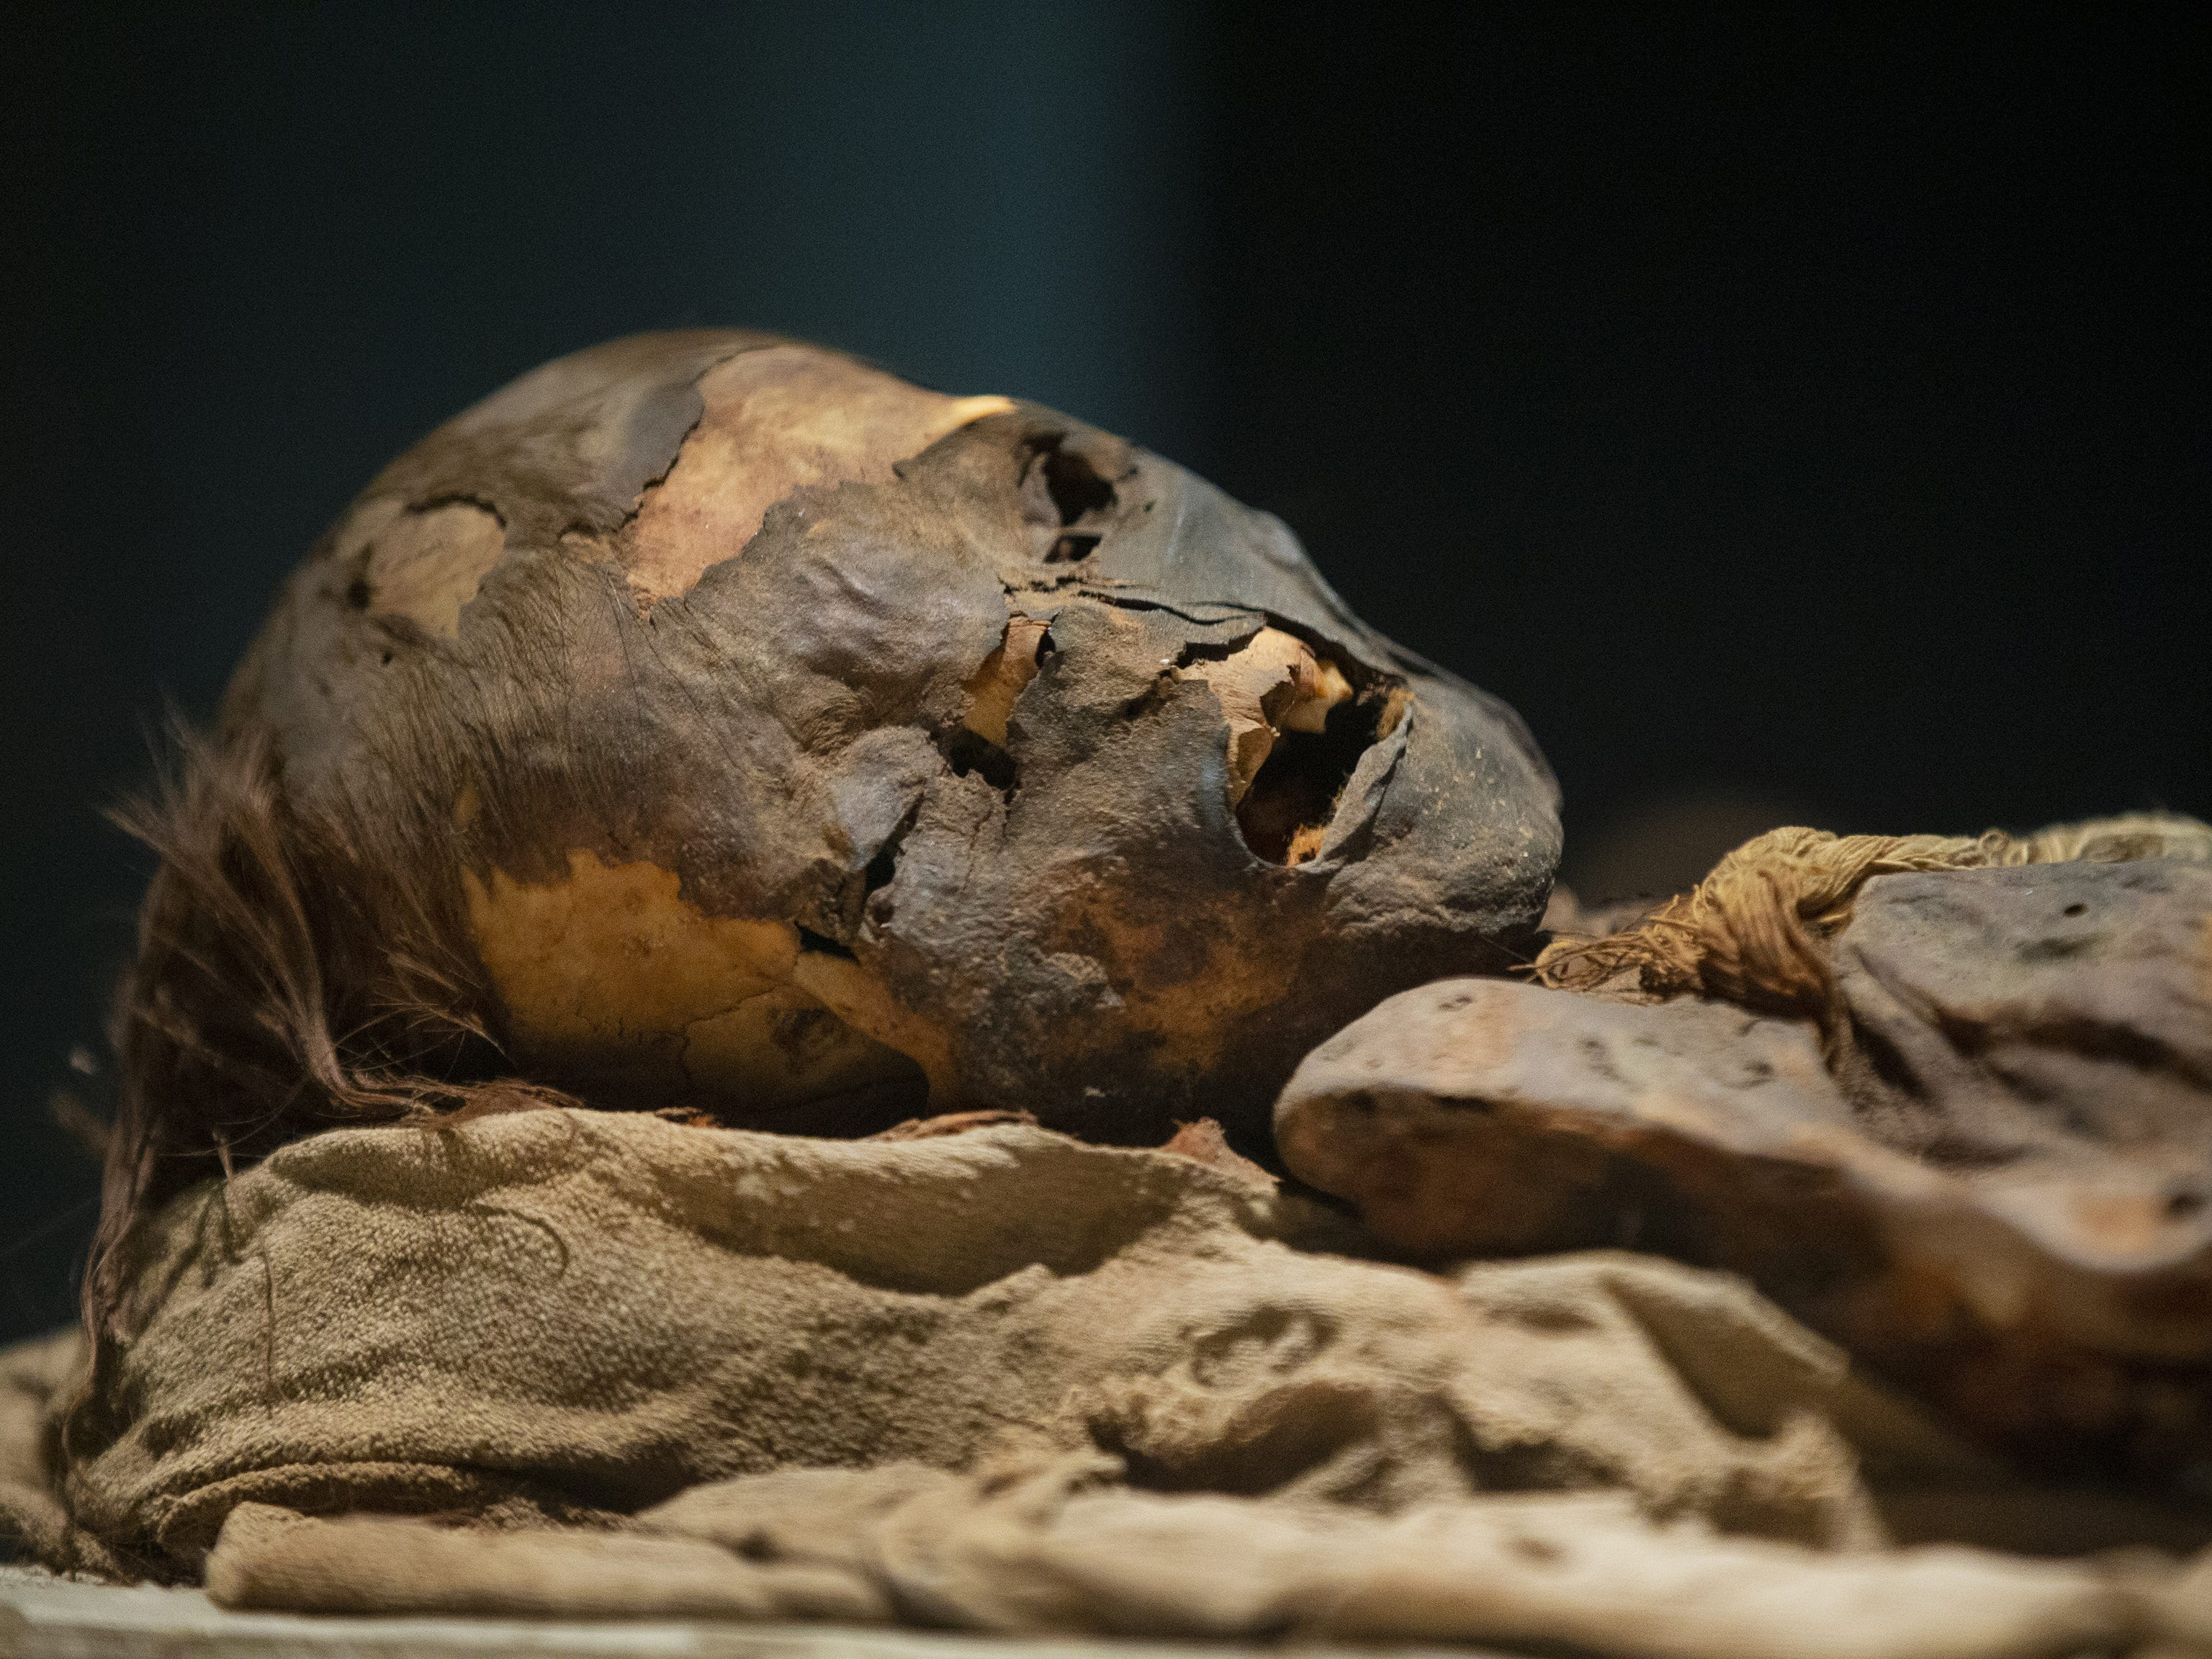 Mummies of the World: The Exhibition displays a child from South America who was naturally preserved in the hot and dry environment. The exhibit at the Arizona Science Center includes mummies from Egypt, Europe and the U.S. and is open to the public from Feb. 10 through Sept. 2, 2019.